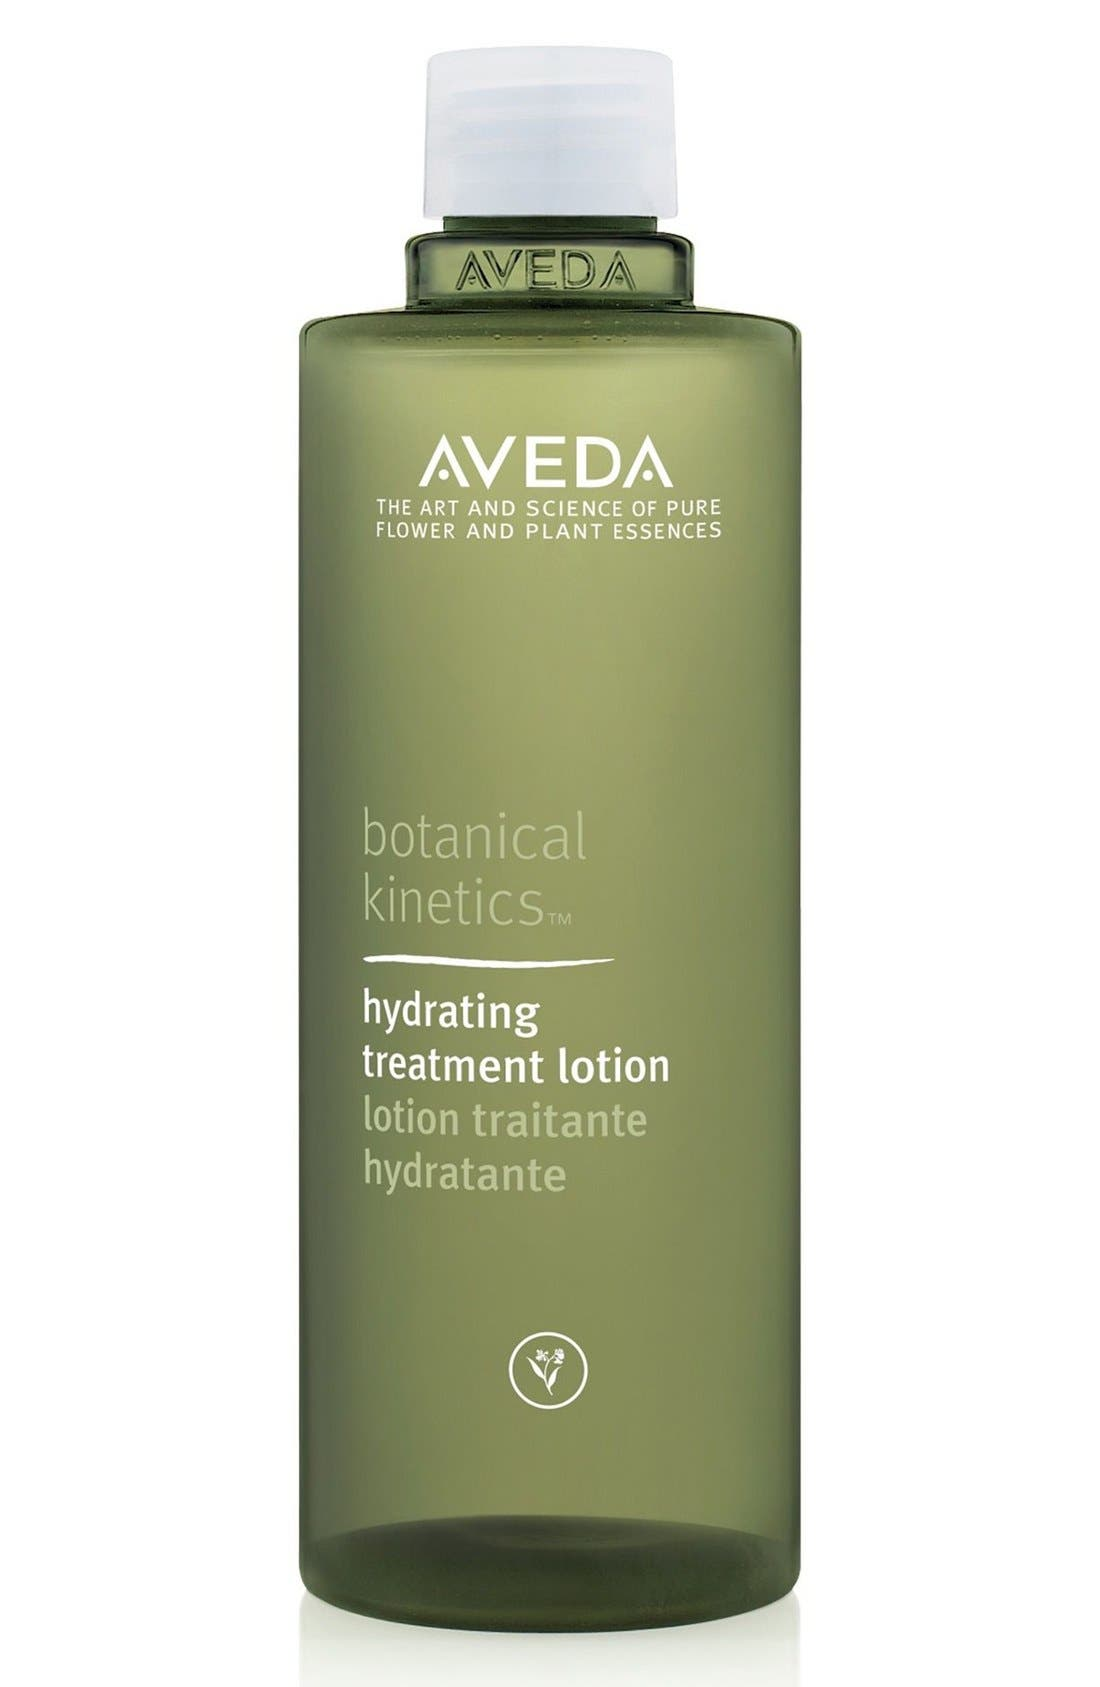 Aveda 'botanical kinetics™' Hydrating Treatment Lotion